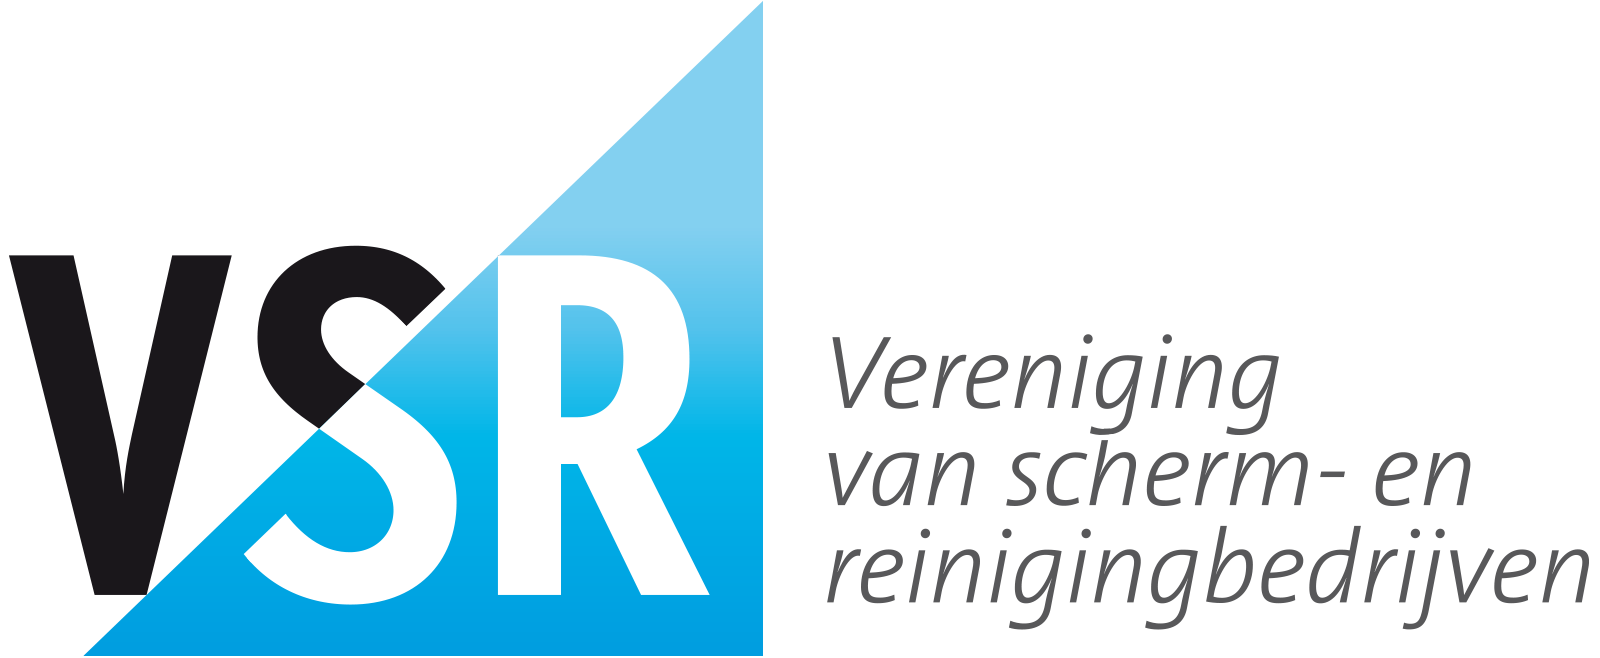 Vsrnl logo by RDR Reclame & Illustraties